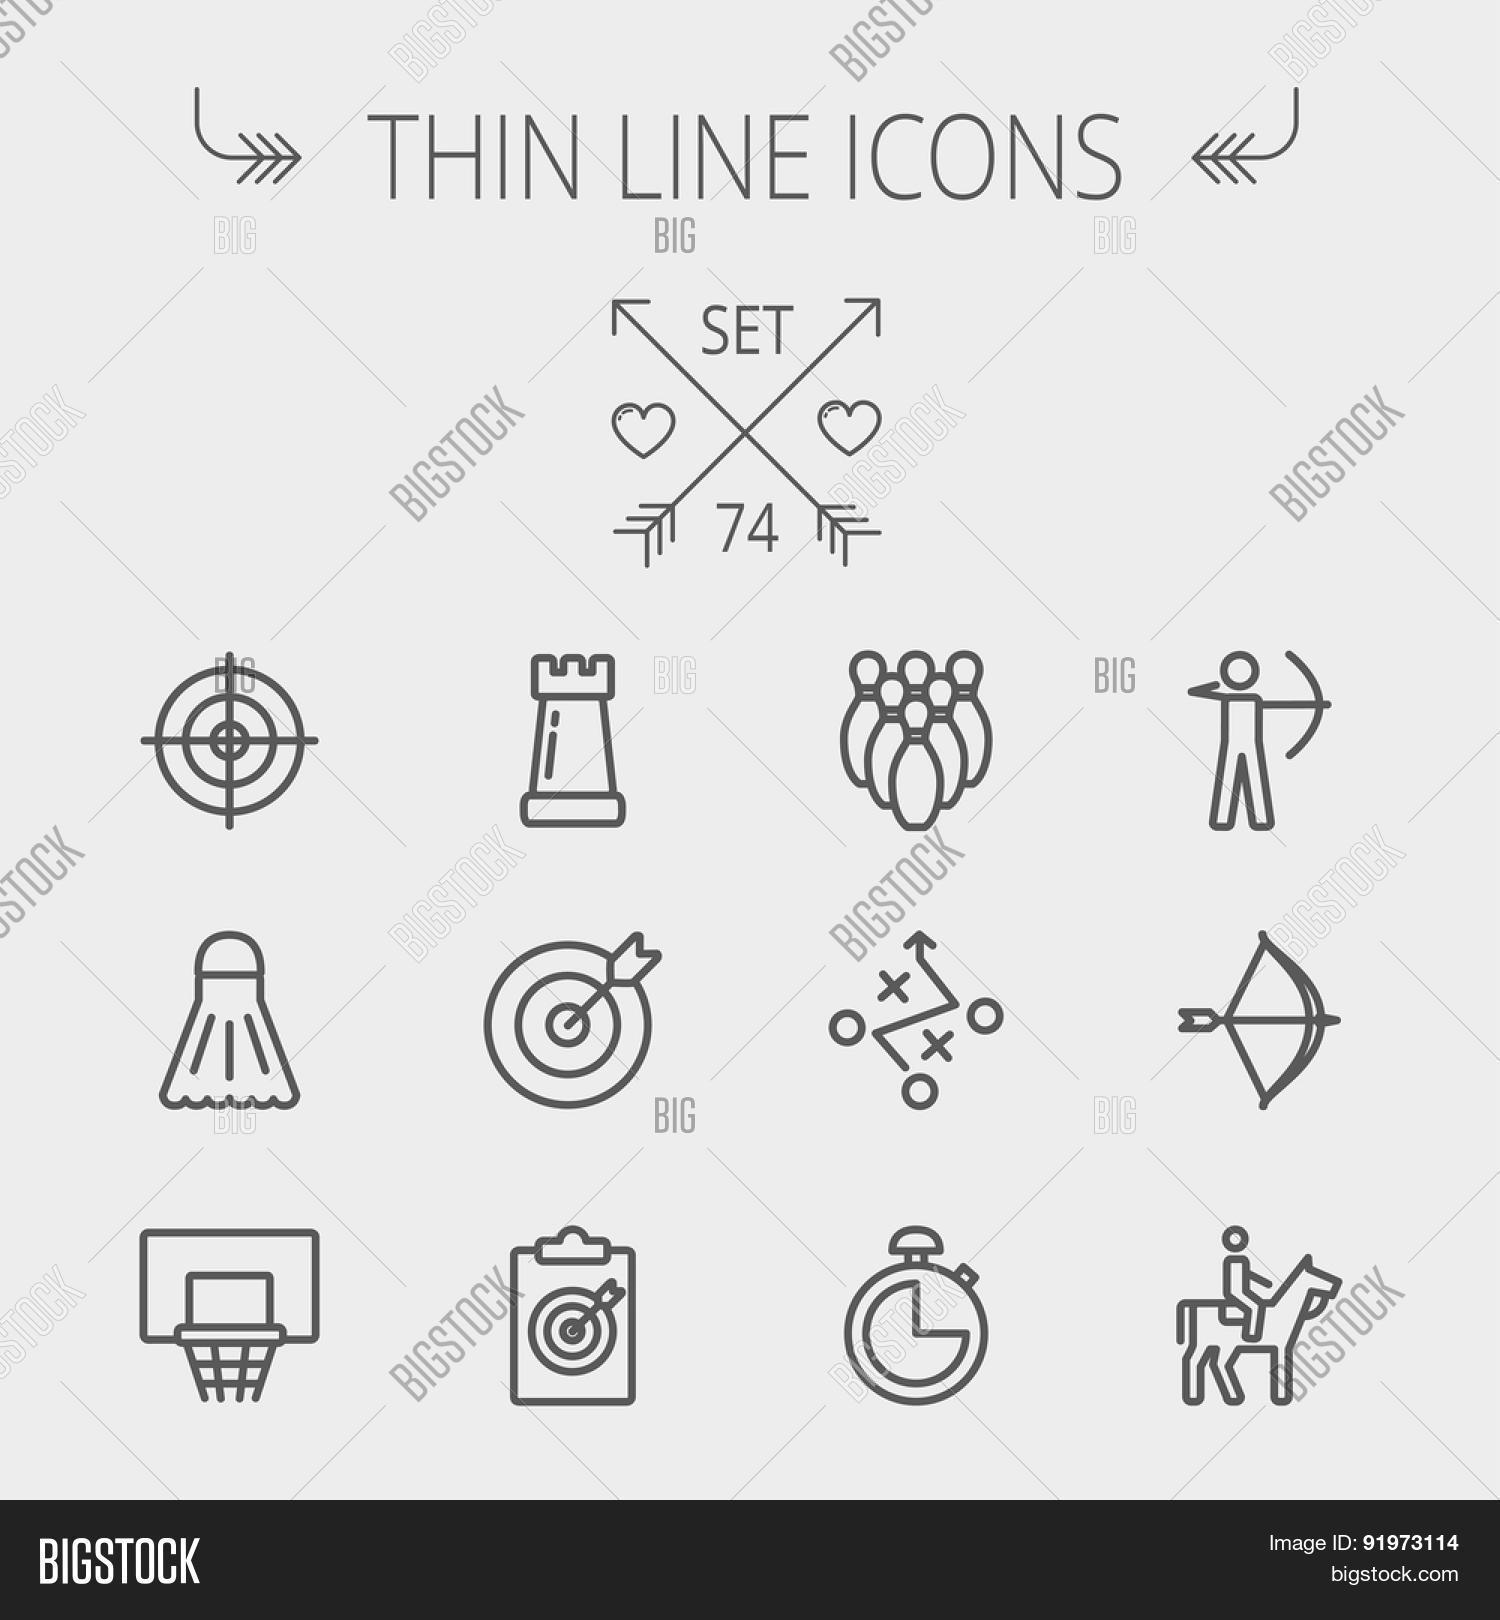 Sports Thin Line Icon Vector & Photo (Free Trial) | Bigstock